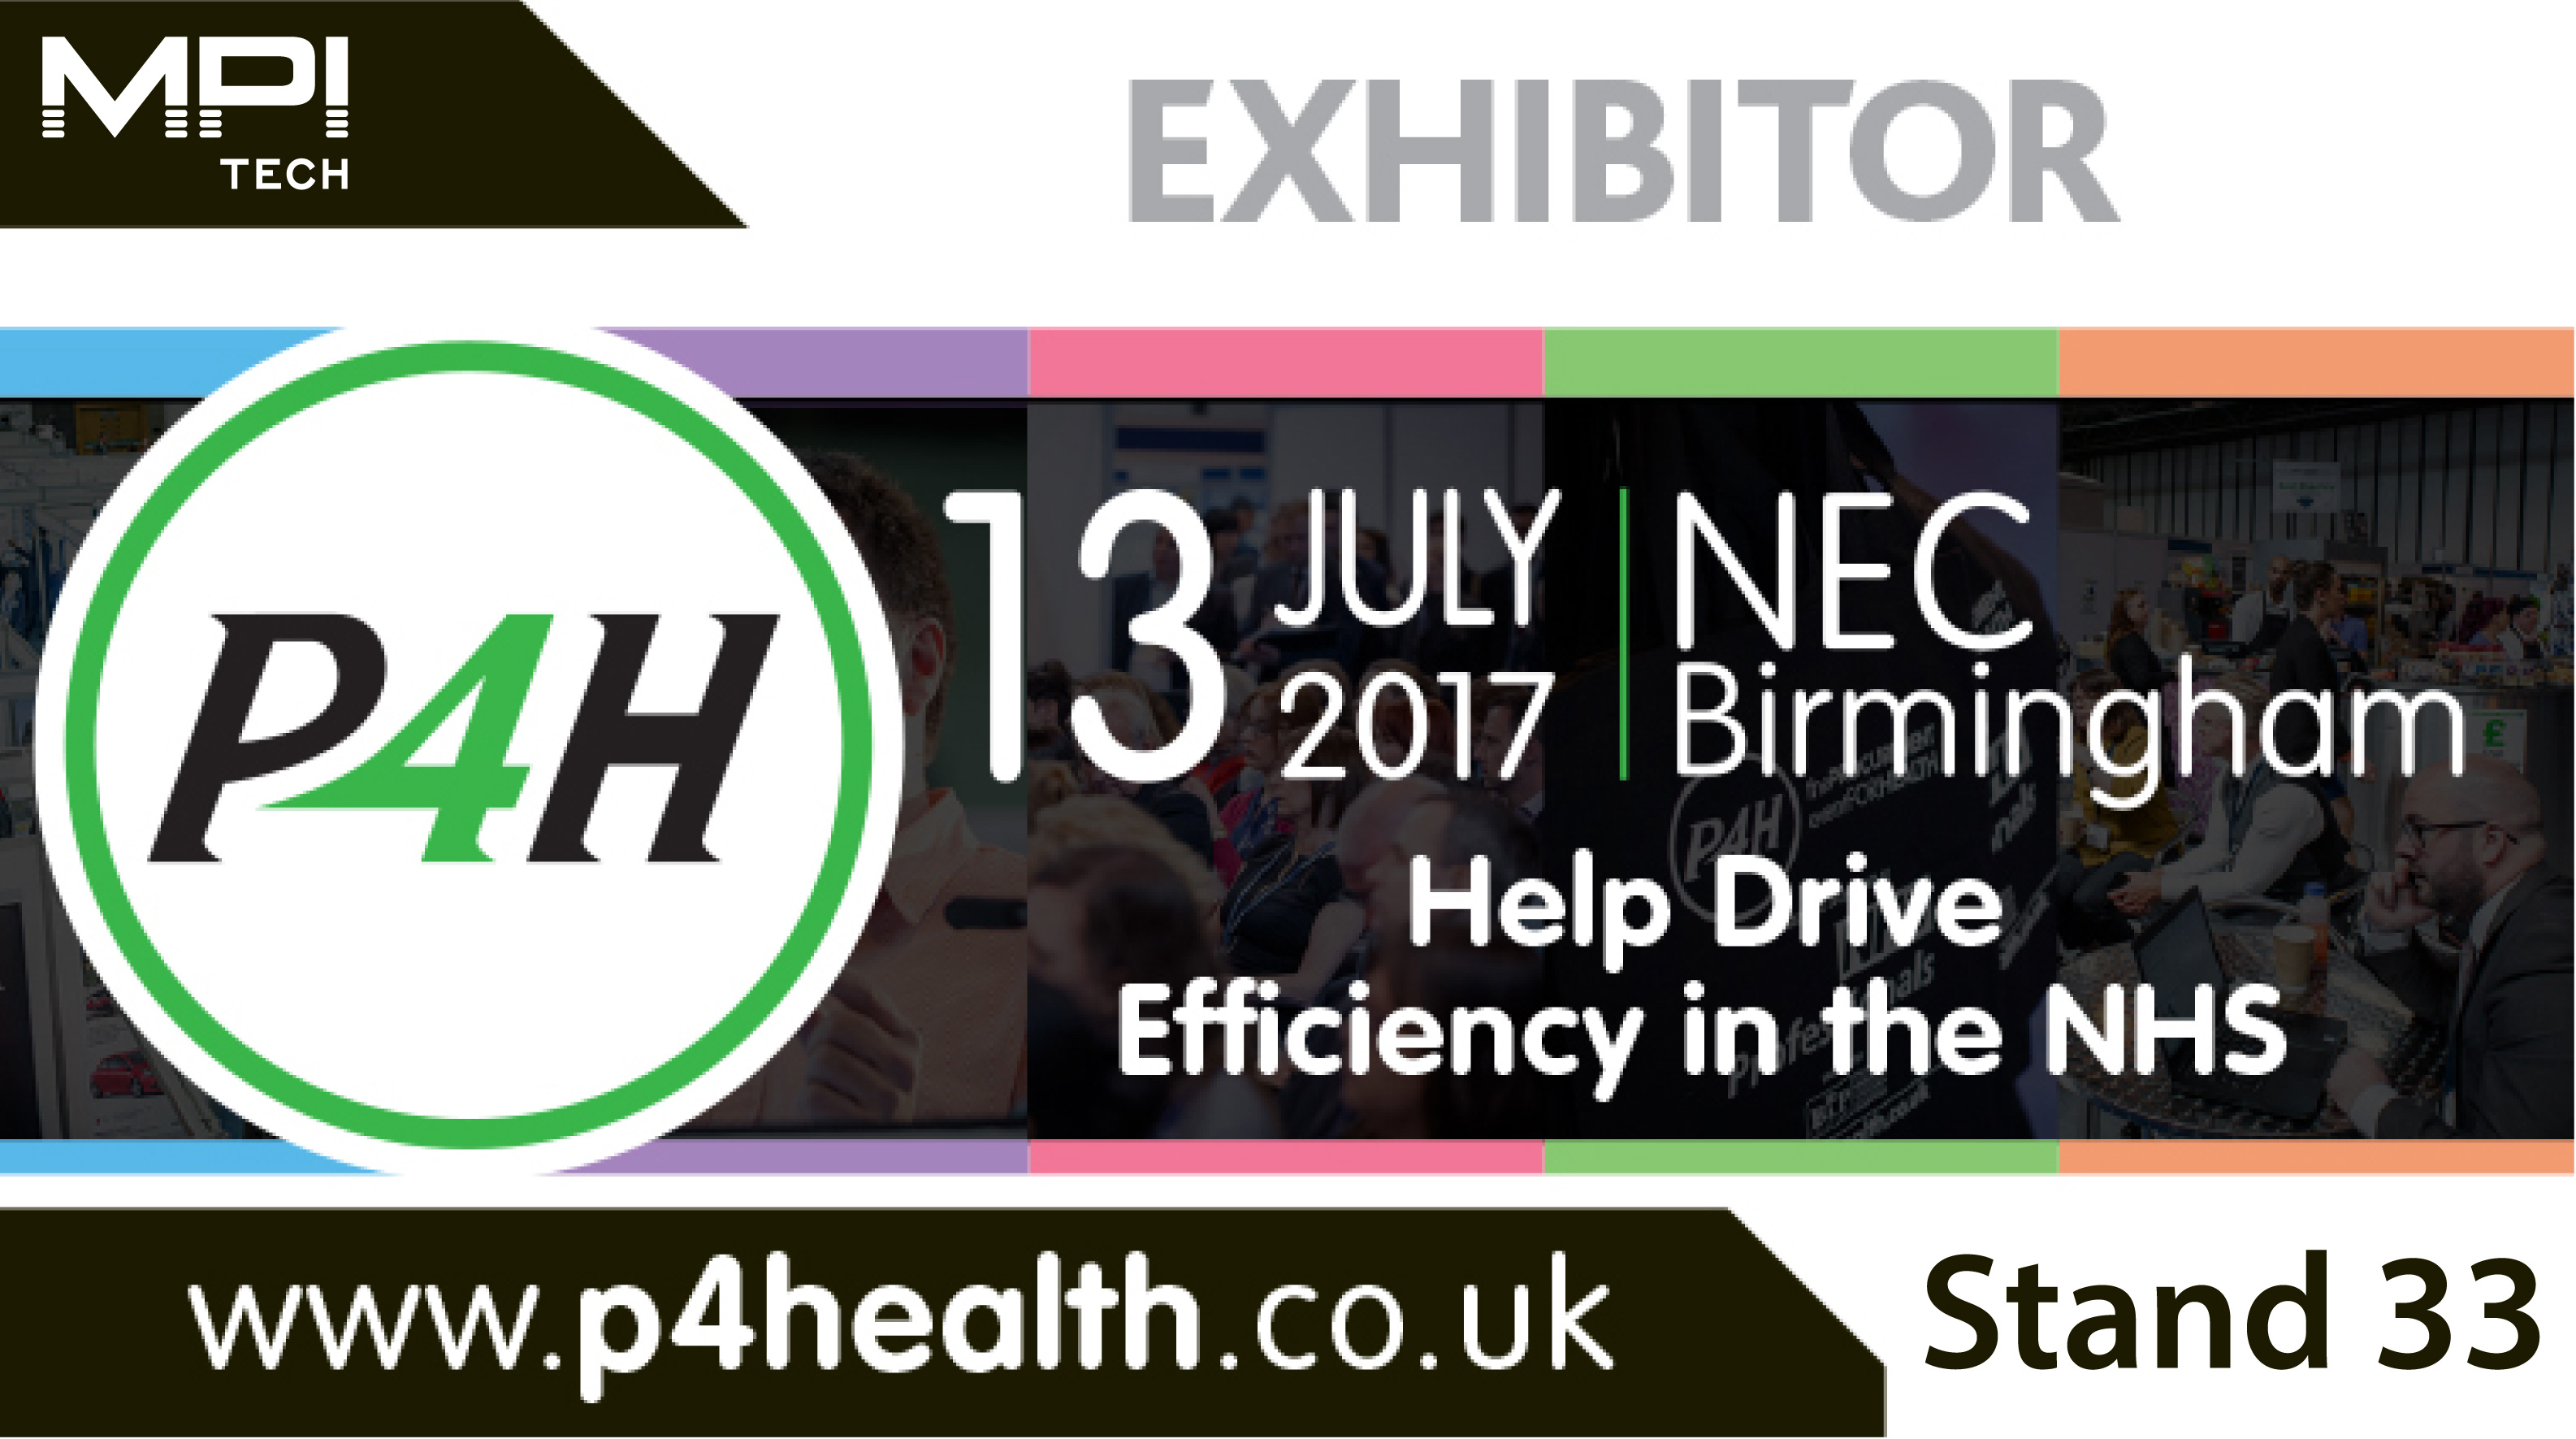 Meet MPI Tech at P4H event in Birmingham July 13